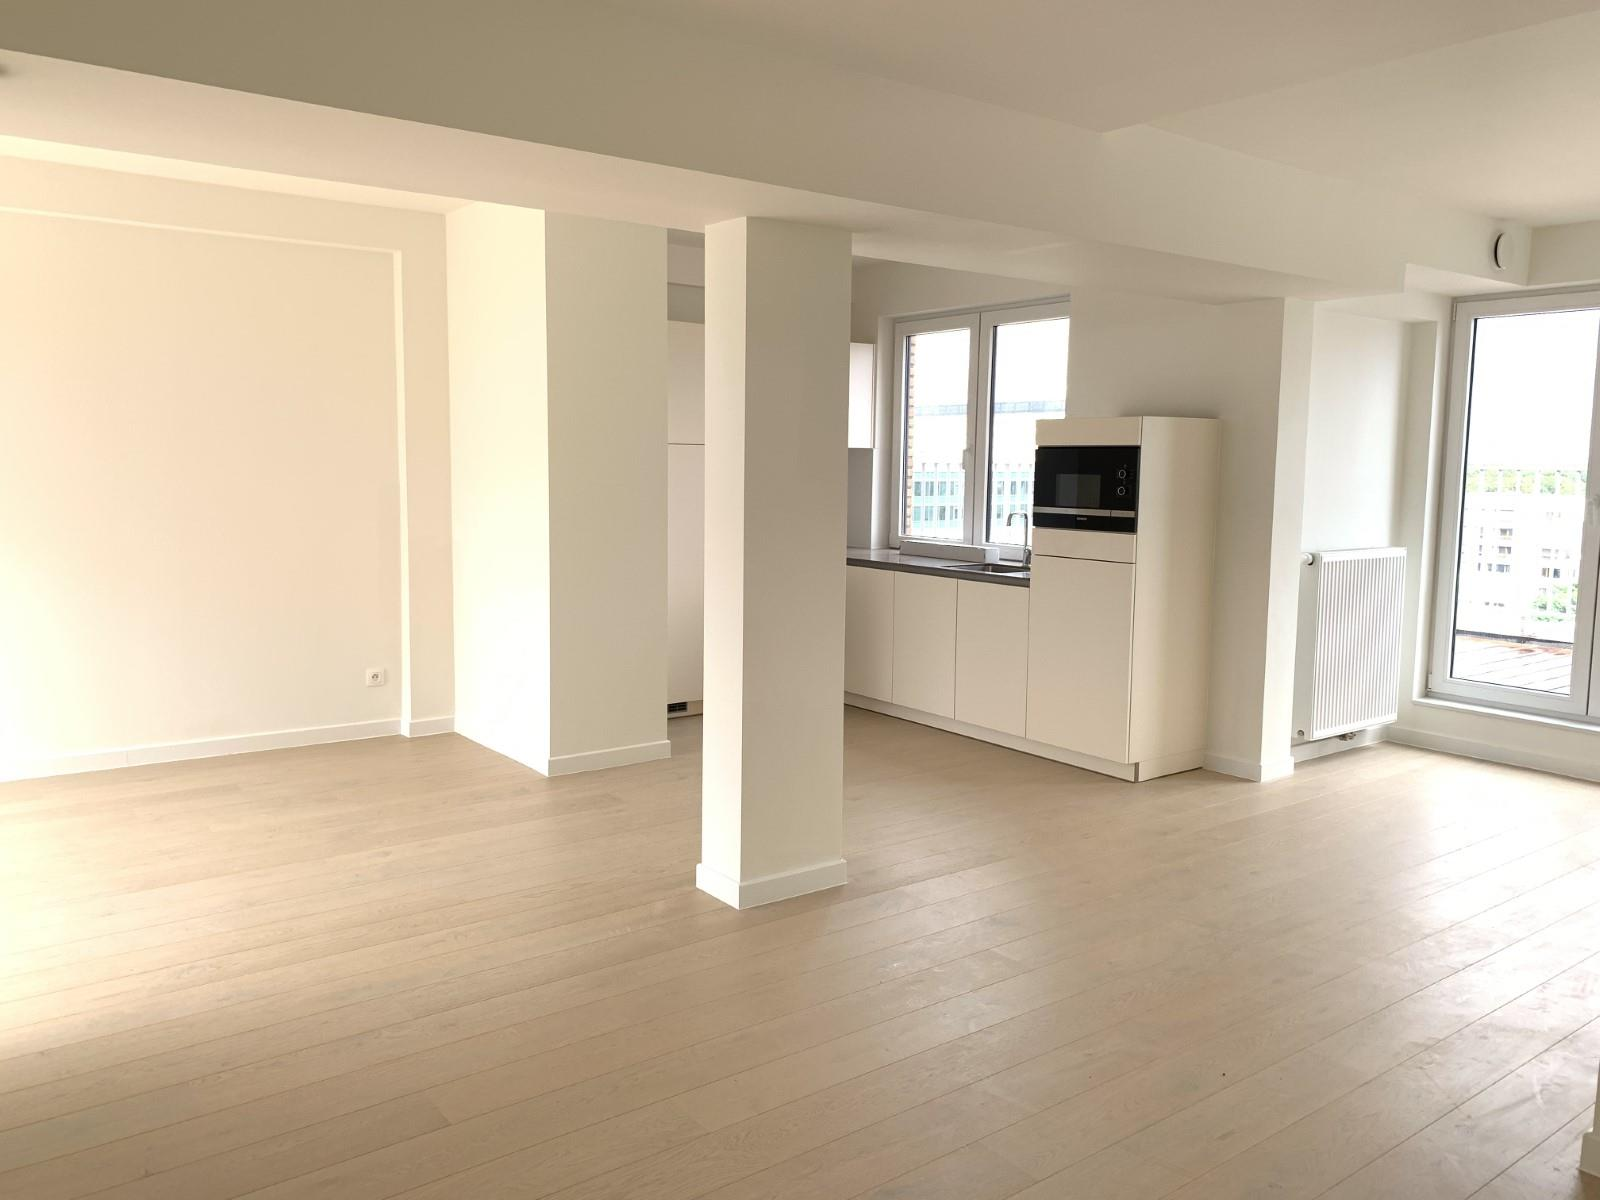 Appartement exceptionnel - Schaerbeek - #3964914-20